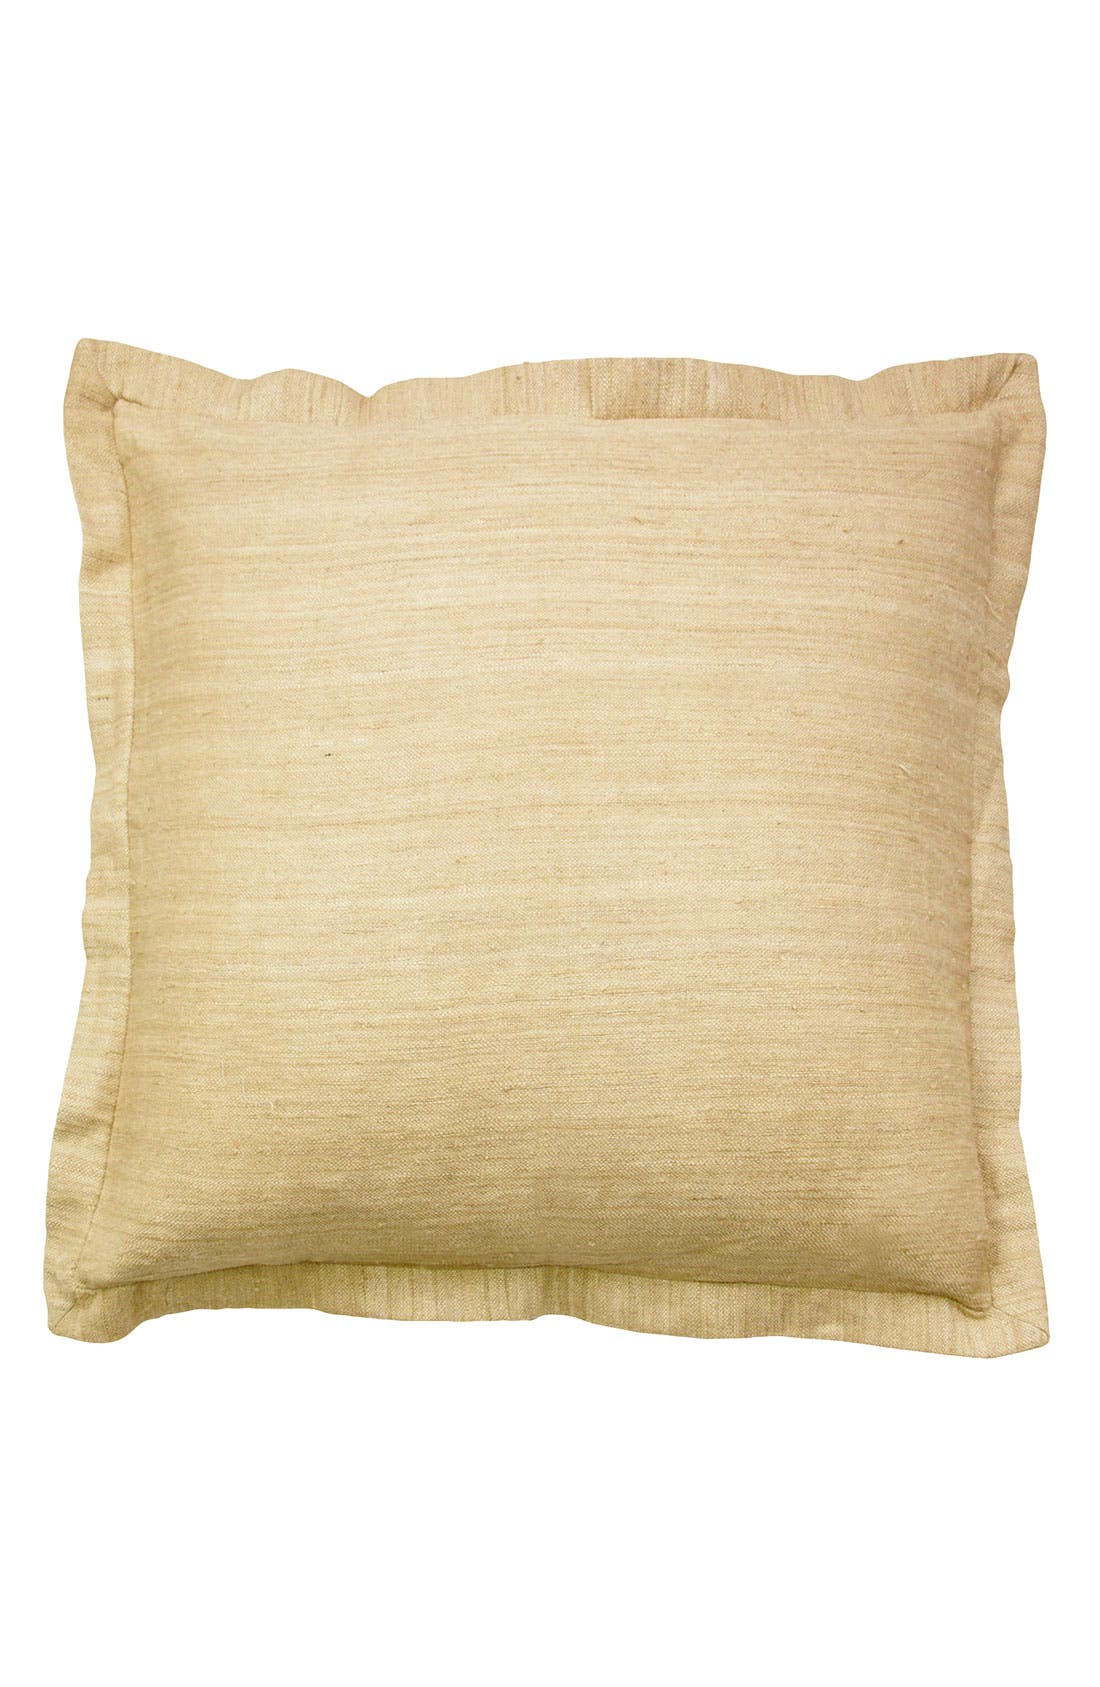 Alternate Image 1 Selected - Blissliving Home 'Colette' Raw Silk Euro Pillow (Online Only)